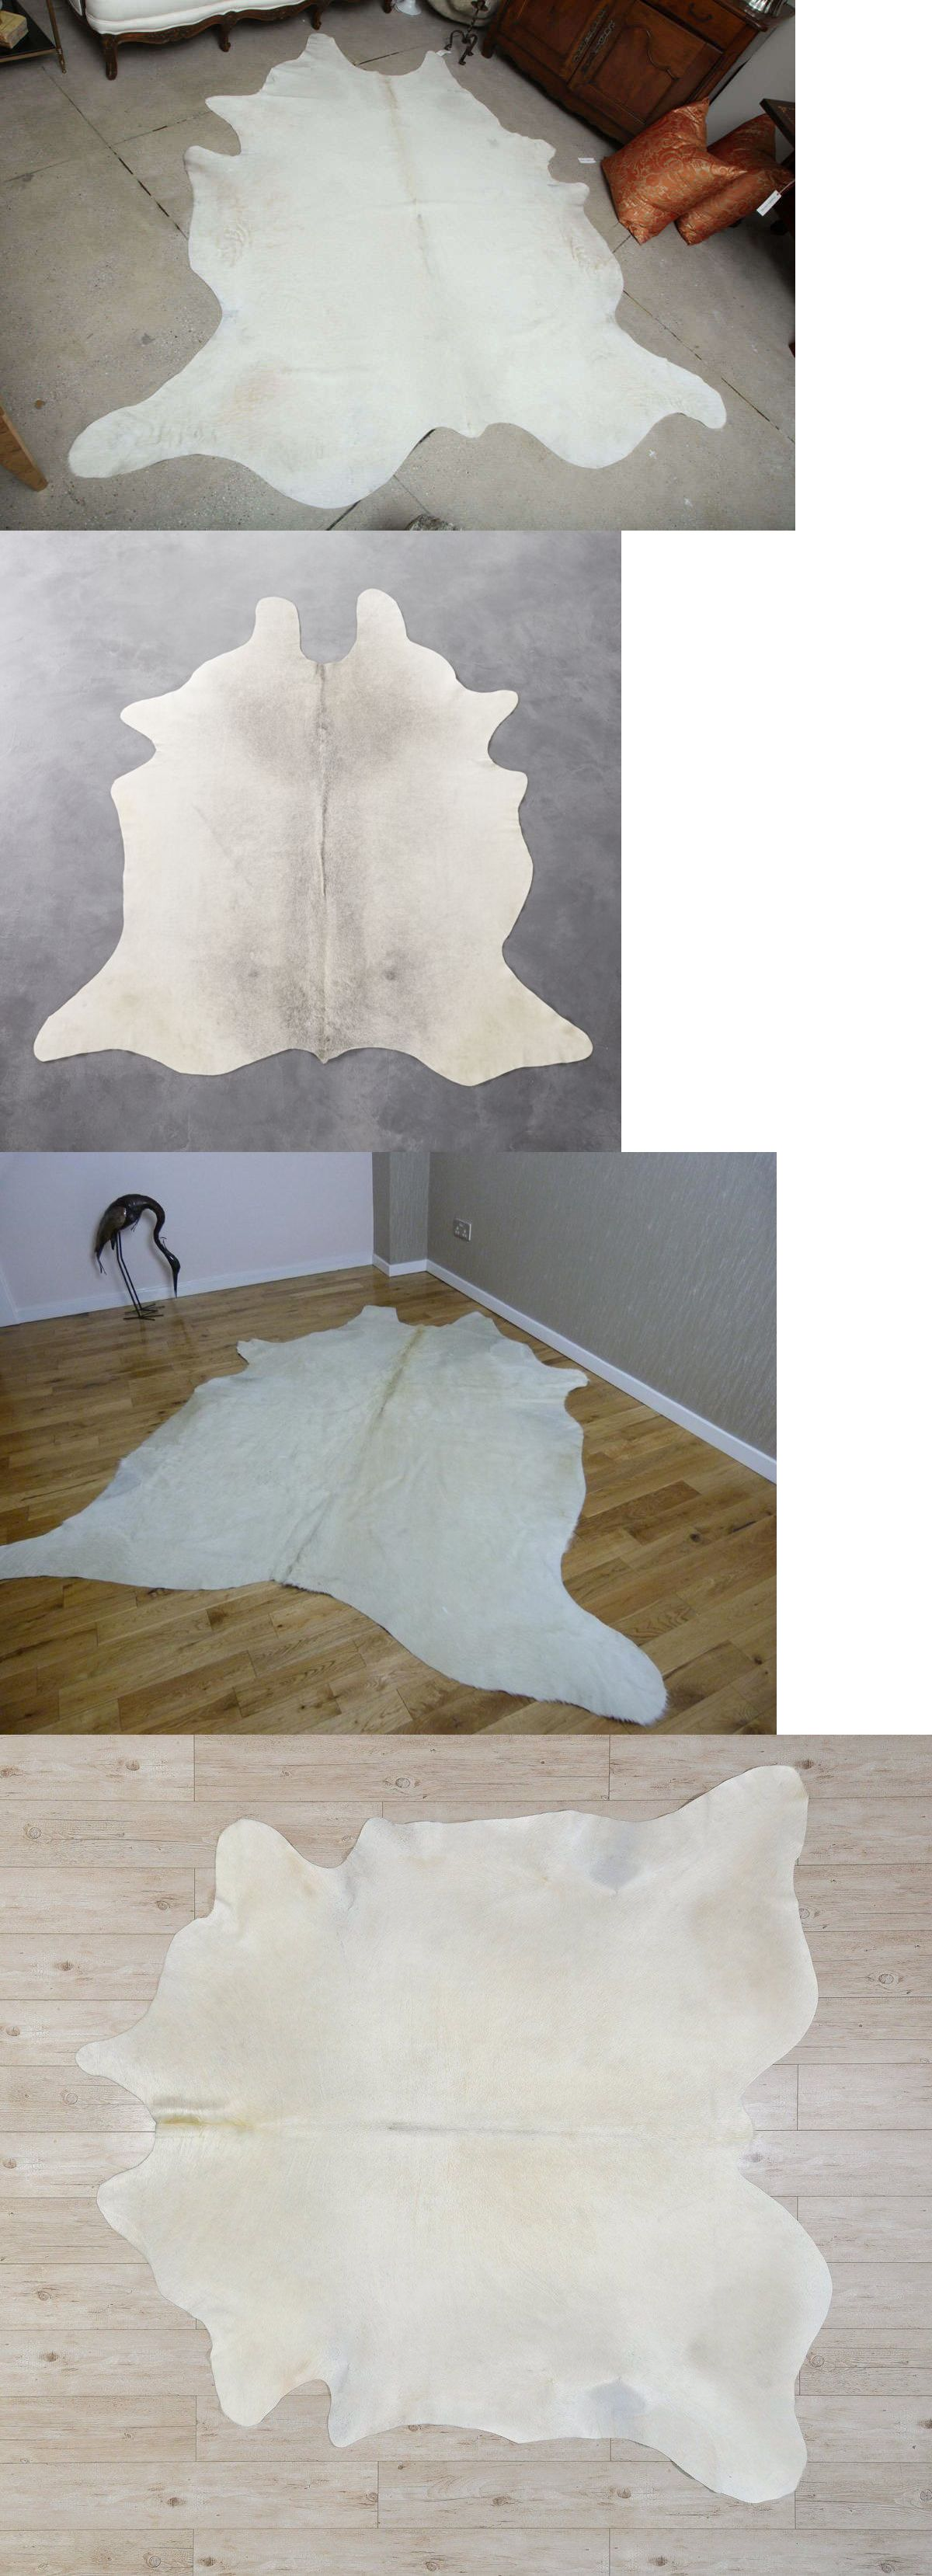 Leather Fur And Sheepskin Rugs 91421 Natural Brazilian Breed White Ivory Cowhide Rug Large 6x7 Ft Cow Skin Area Ru Grey Cowhide Rug Cow Hide Rug Grey Cow Hide